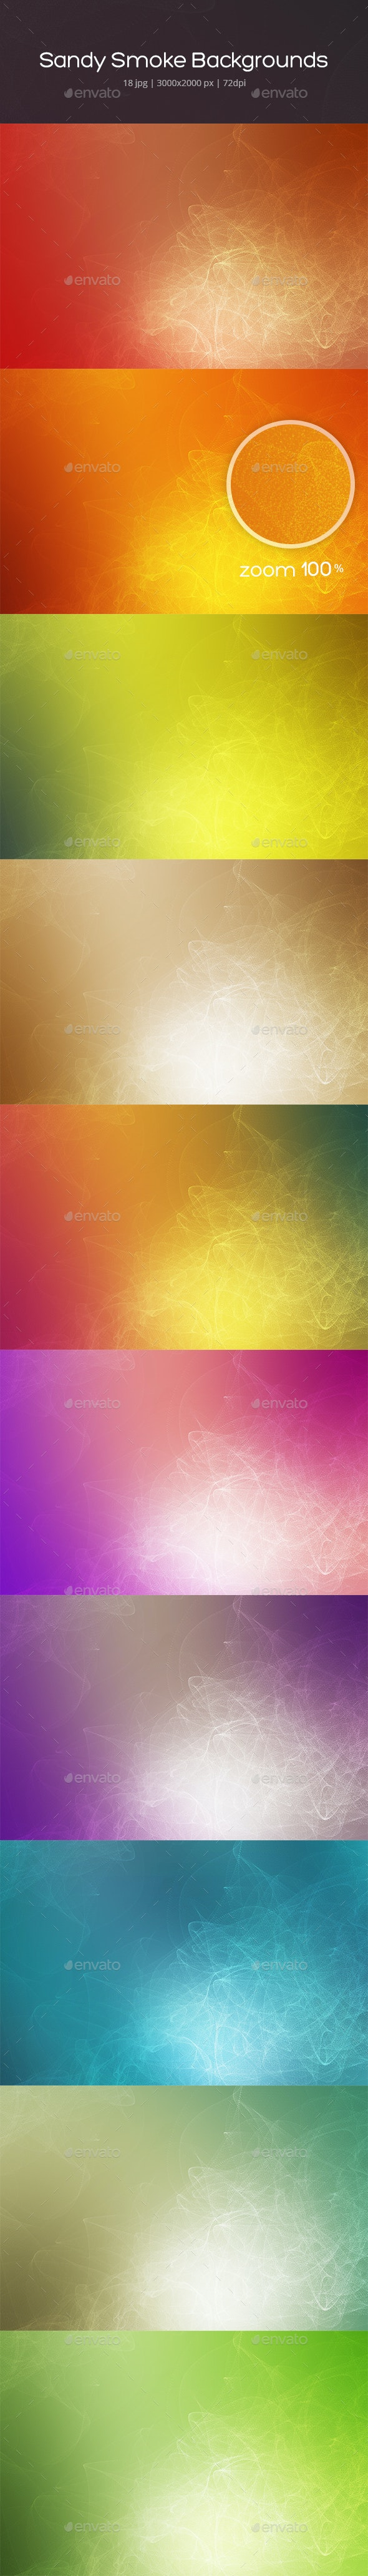 Sandy Smoke Backgrounds - Abstract Backgrounds